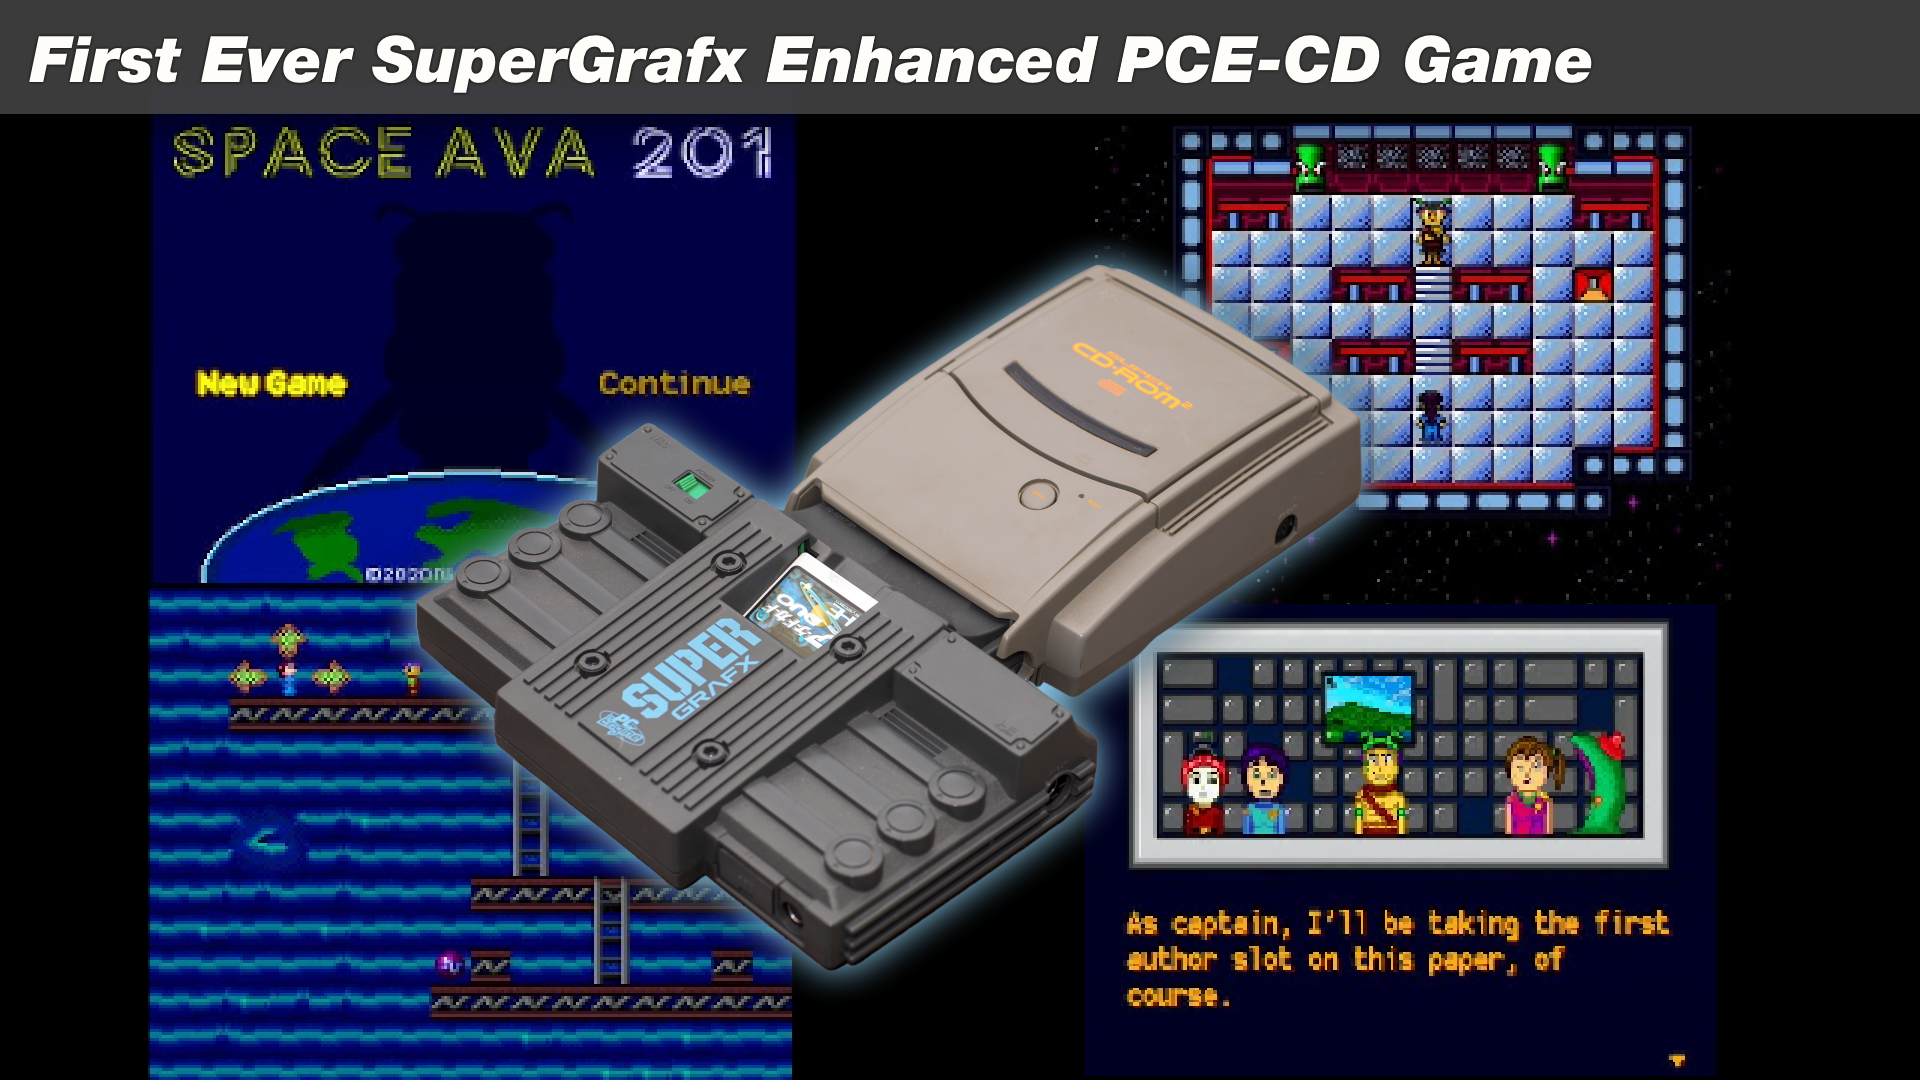 Space Ava 201: The First PC Engine CD Game With SuperGrafx Enhancements, and Arcade Card